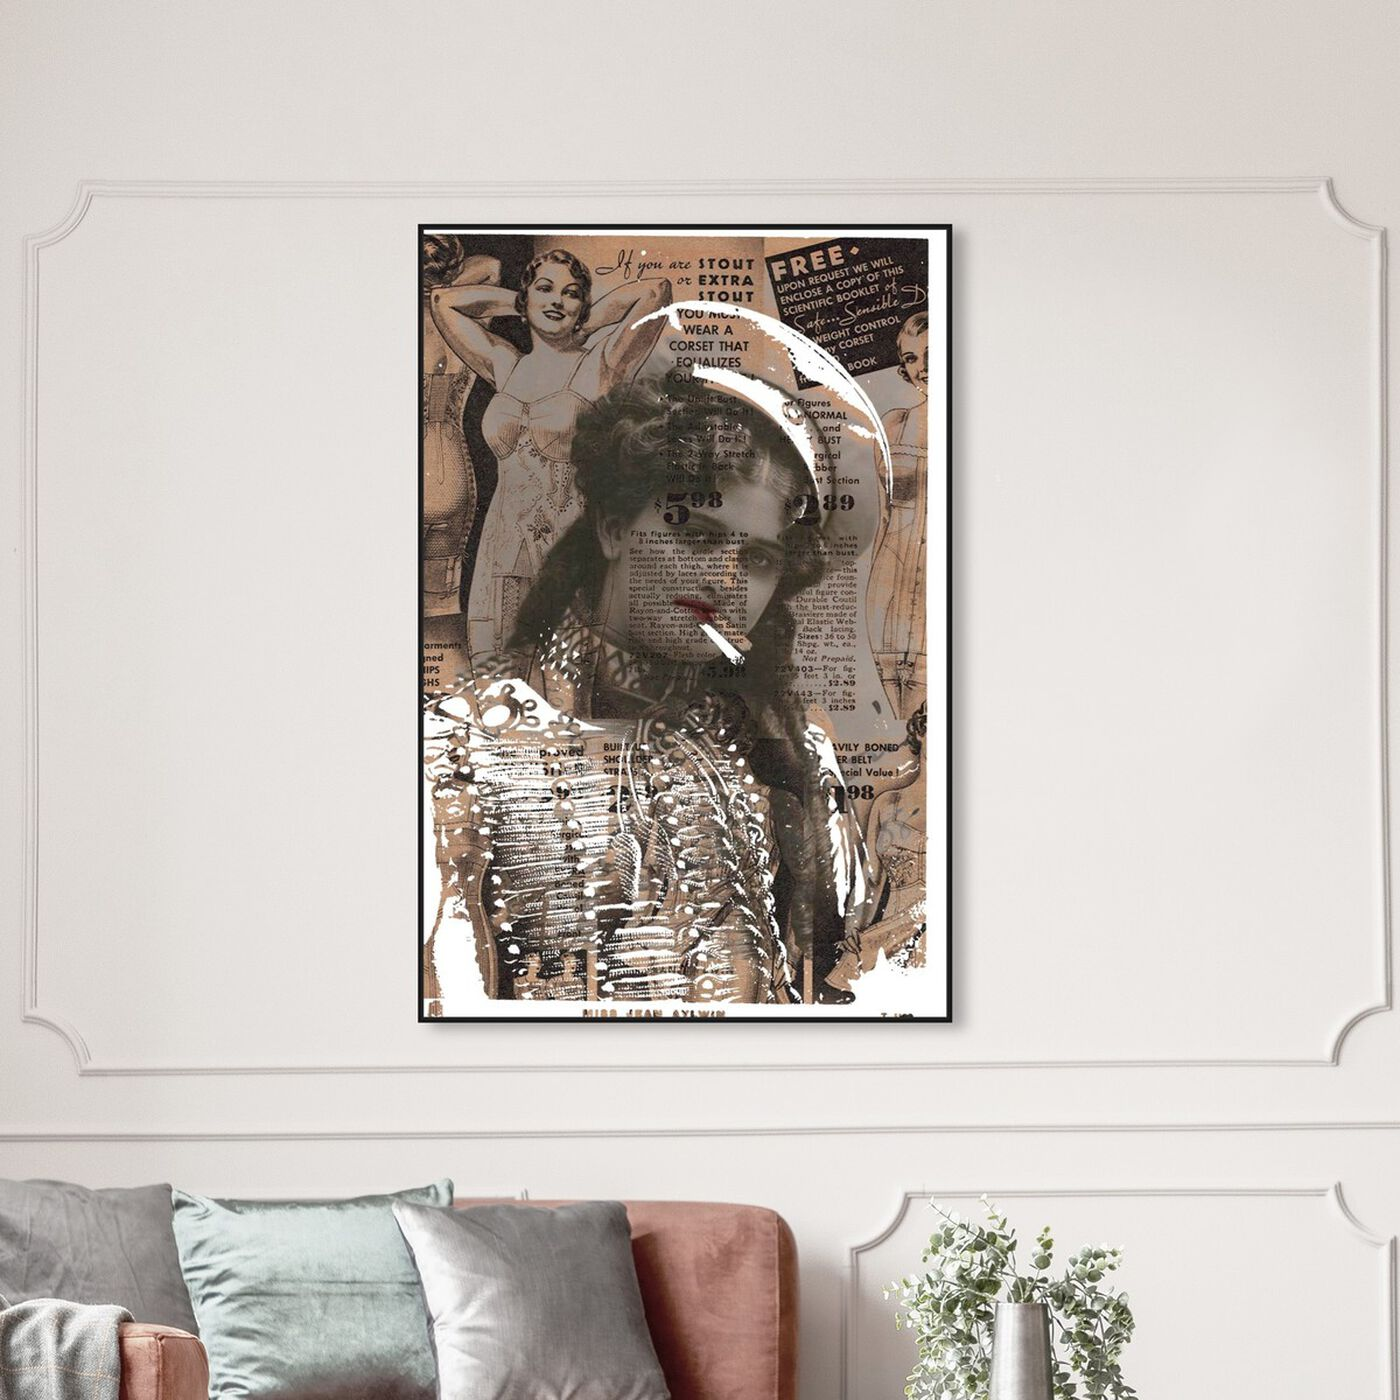 Hanging view of Miss Jean Aylwin featuring advertising and publications art.